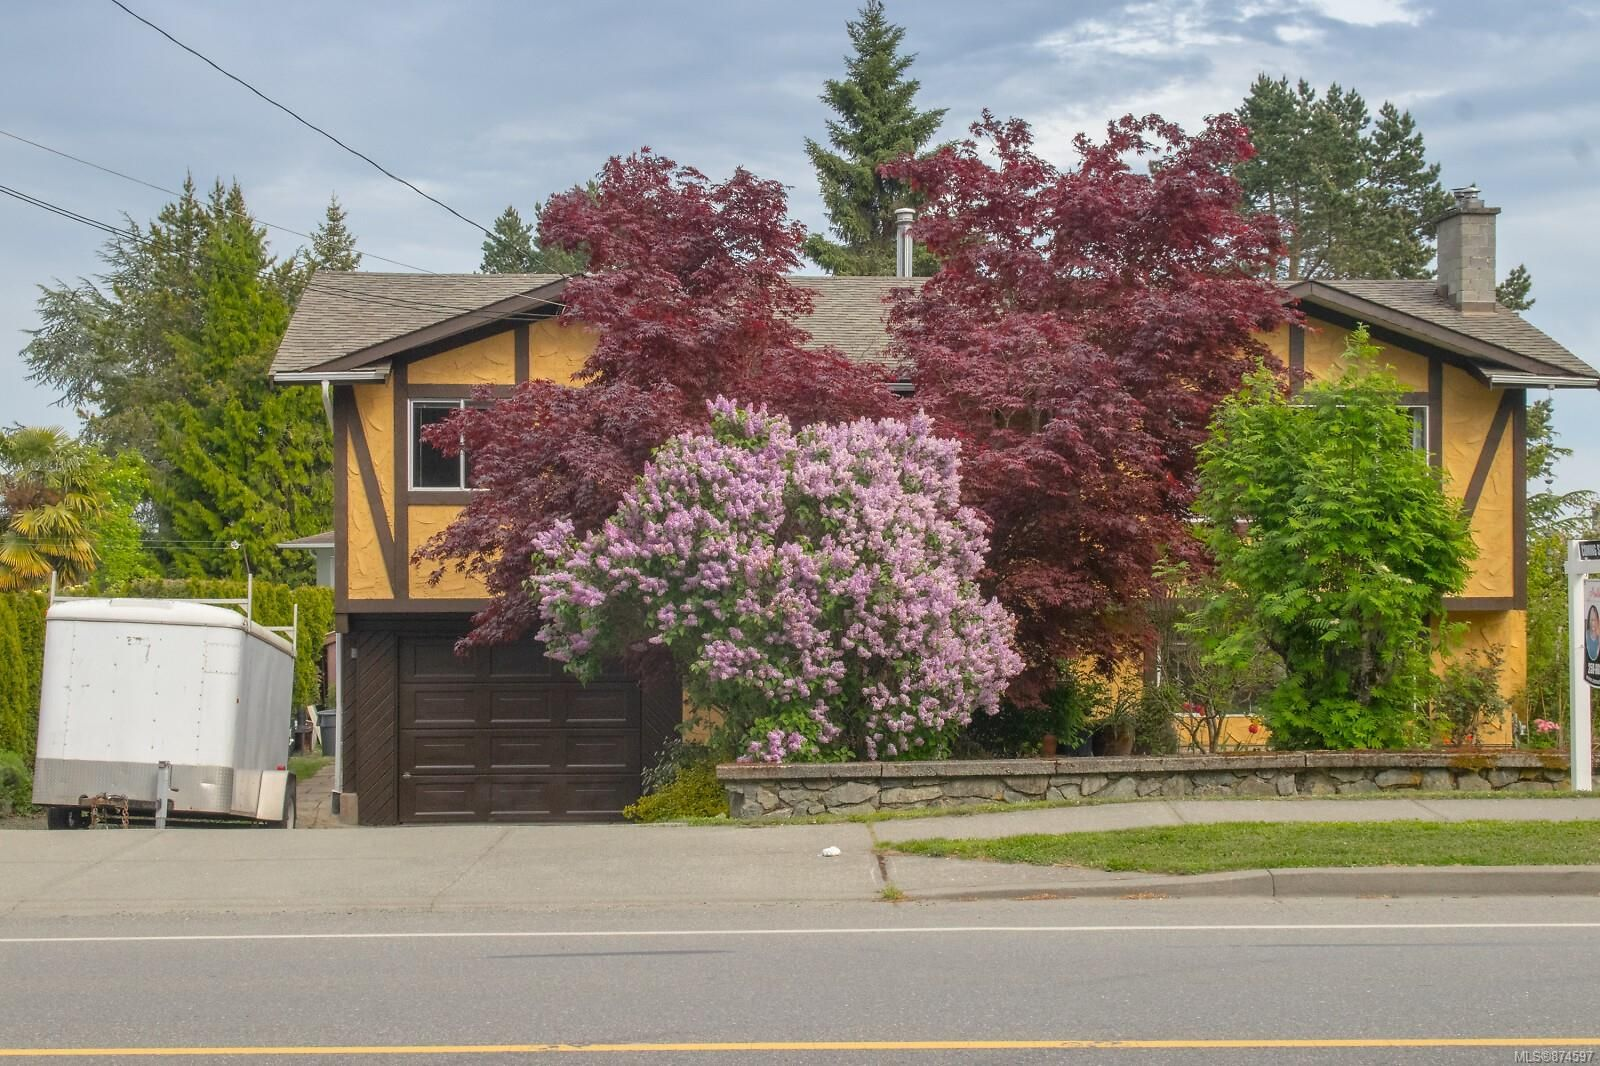 Main Photo: 7635 East Saanich Rd in : CS Saanichton House for sale (Central Saanich)  : MLS®# 874597